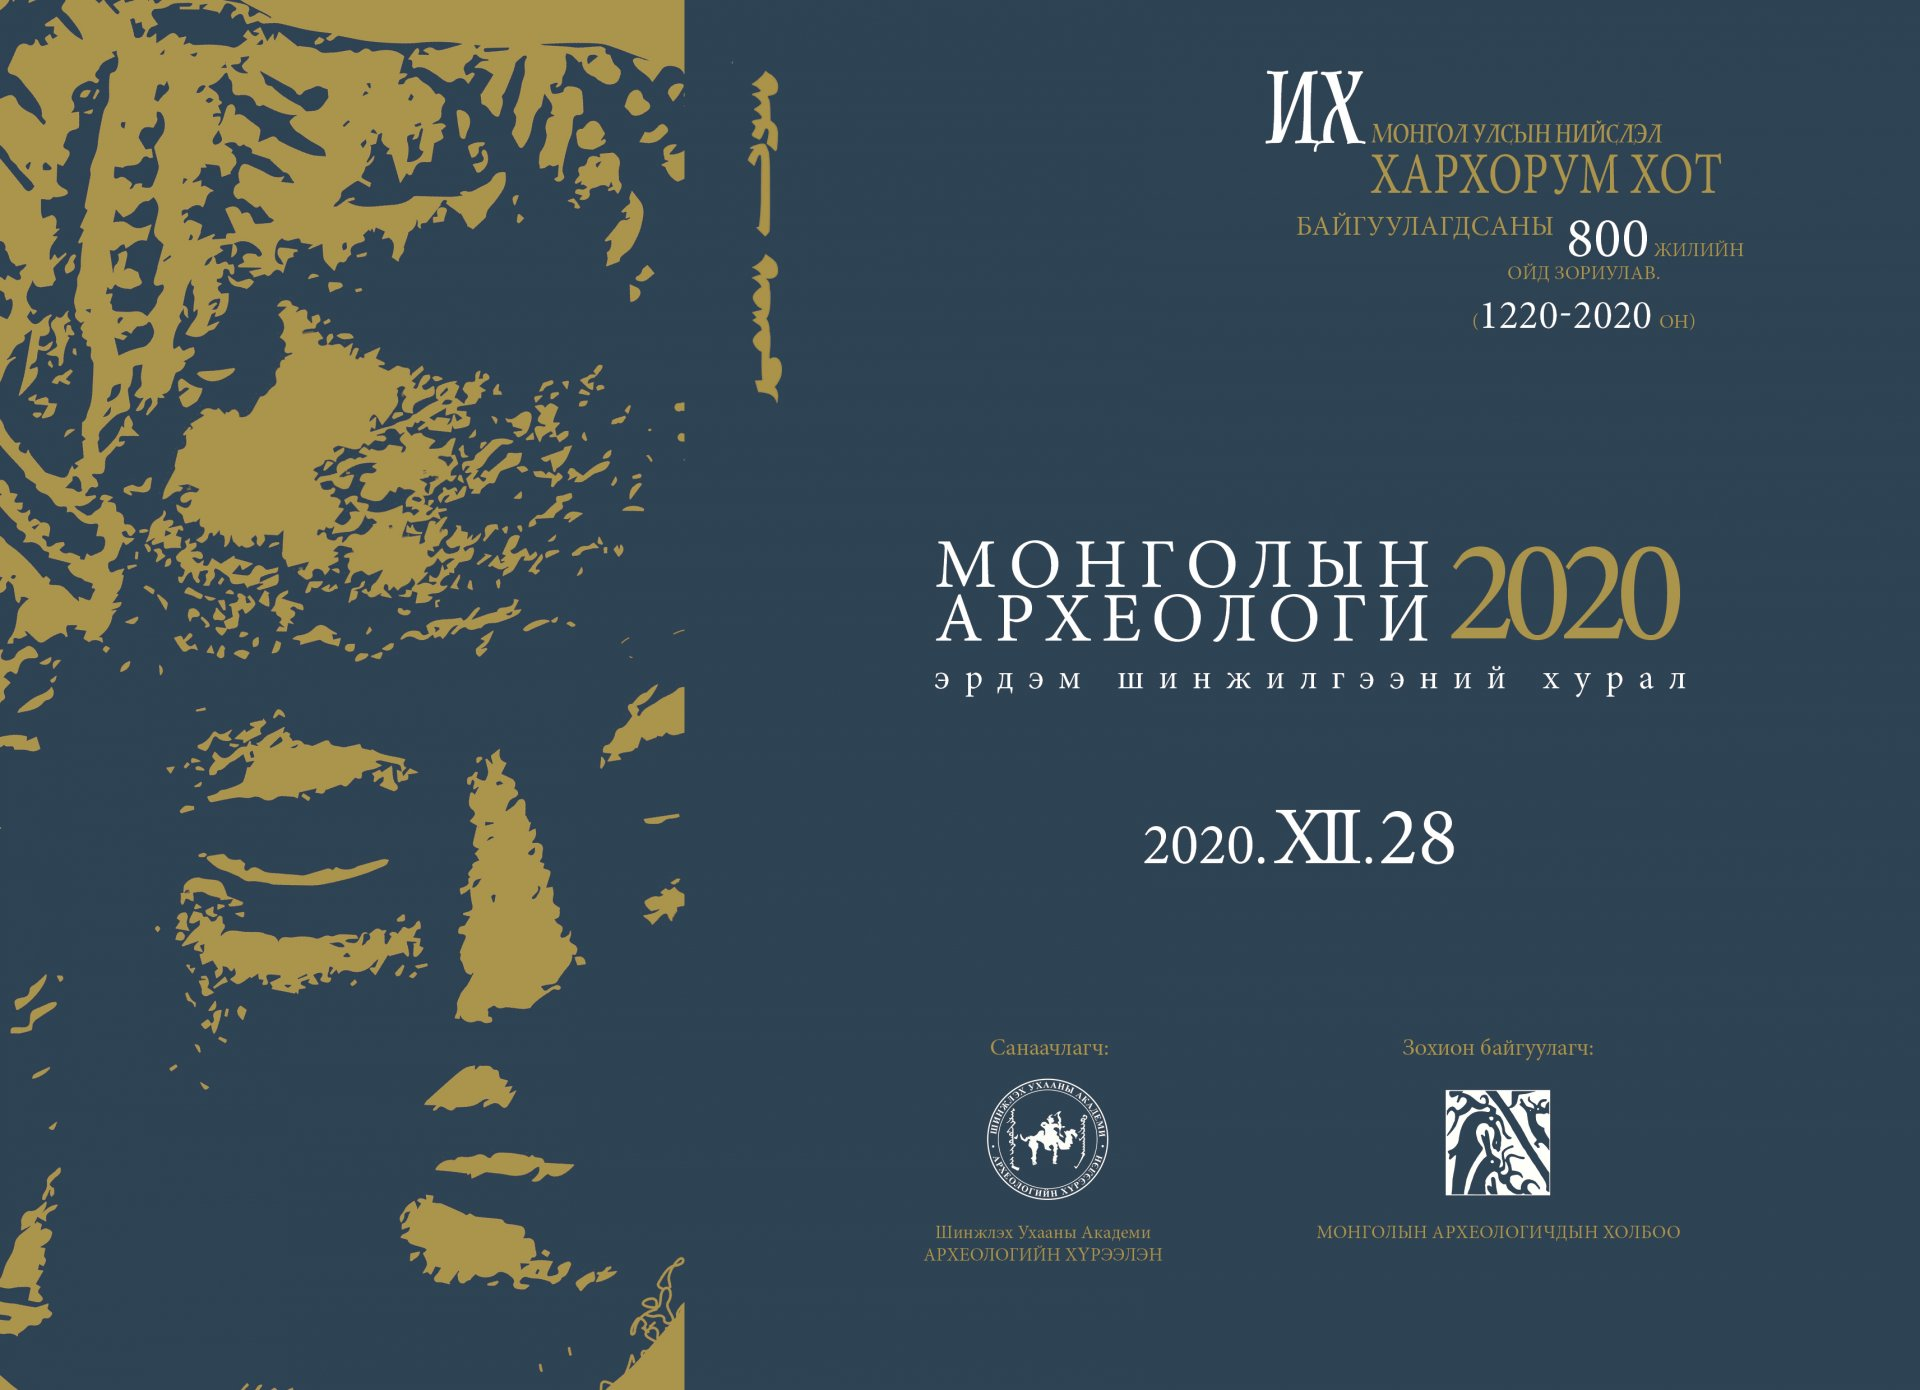 Archaeology of Mongolia – 2020  The annual conference on Archaeology of Mongolia 2020 is dedicated to the 800th anniversary of Kharkhorum, the capital city of the Mongol Empire. The conference will be held online.